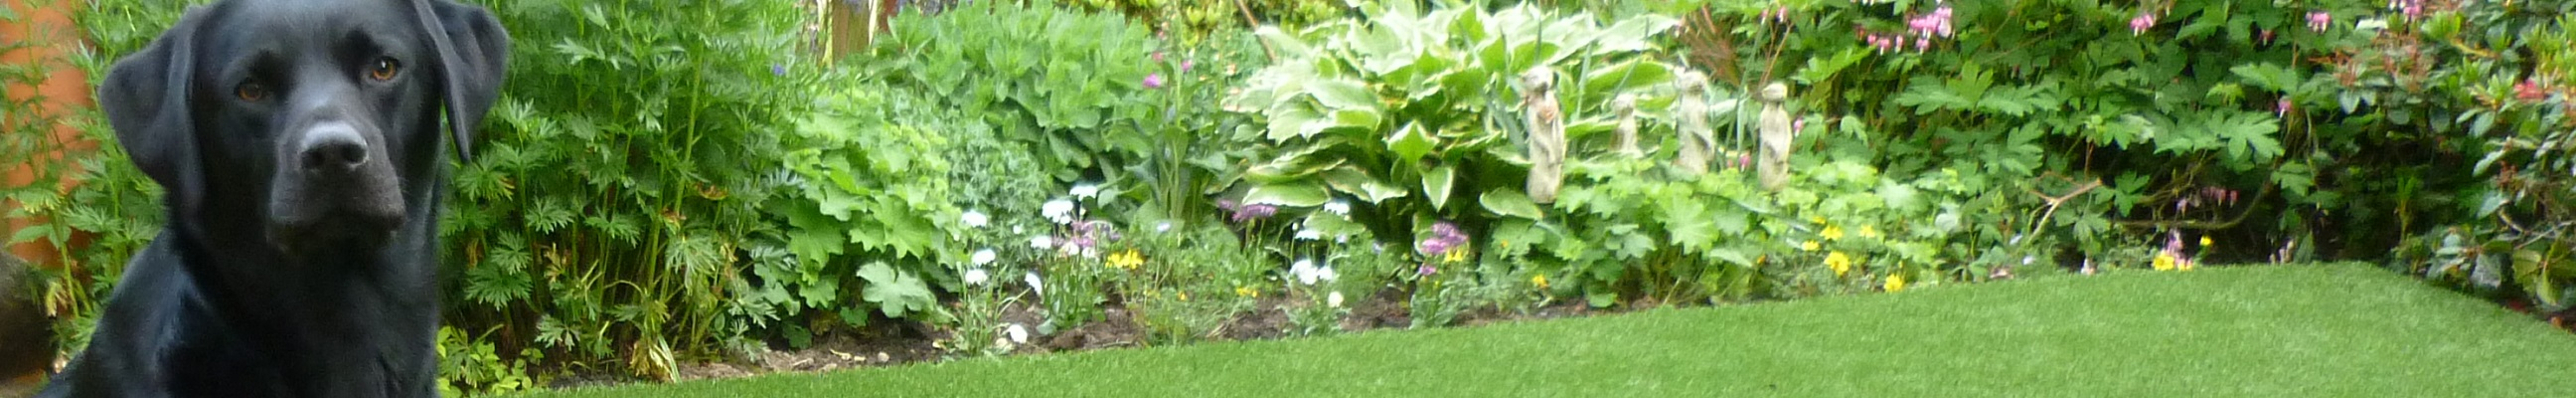 Lawn Turf Edinburgh Artificial Grass Edinburgh